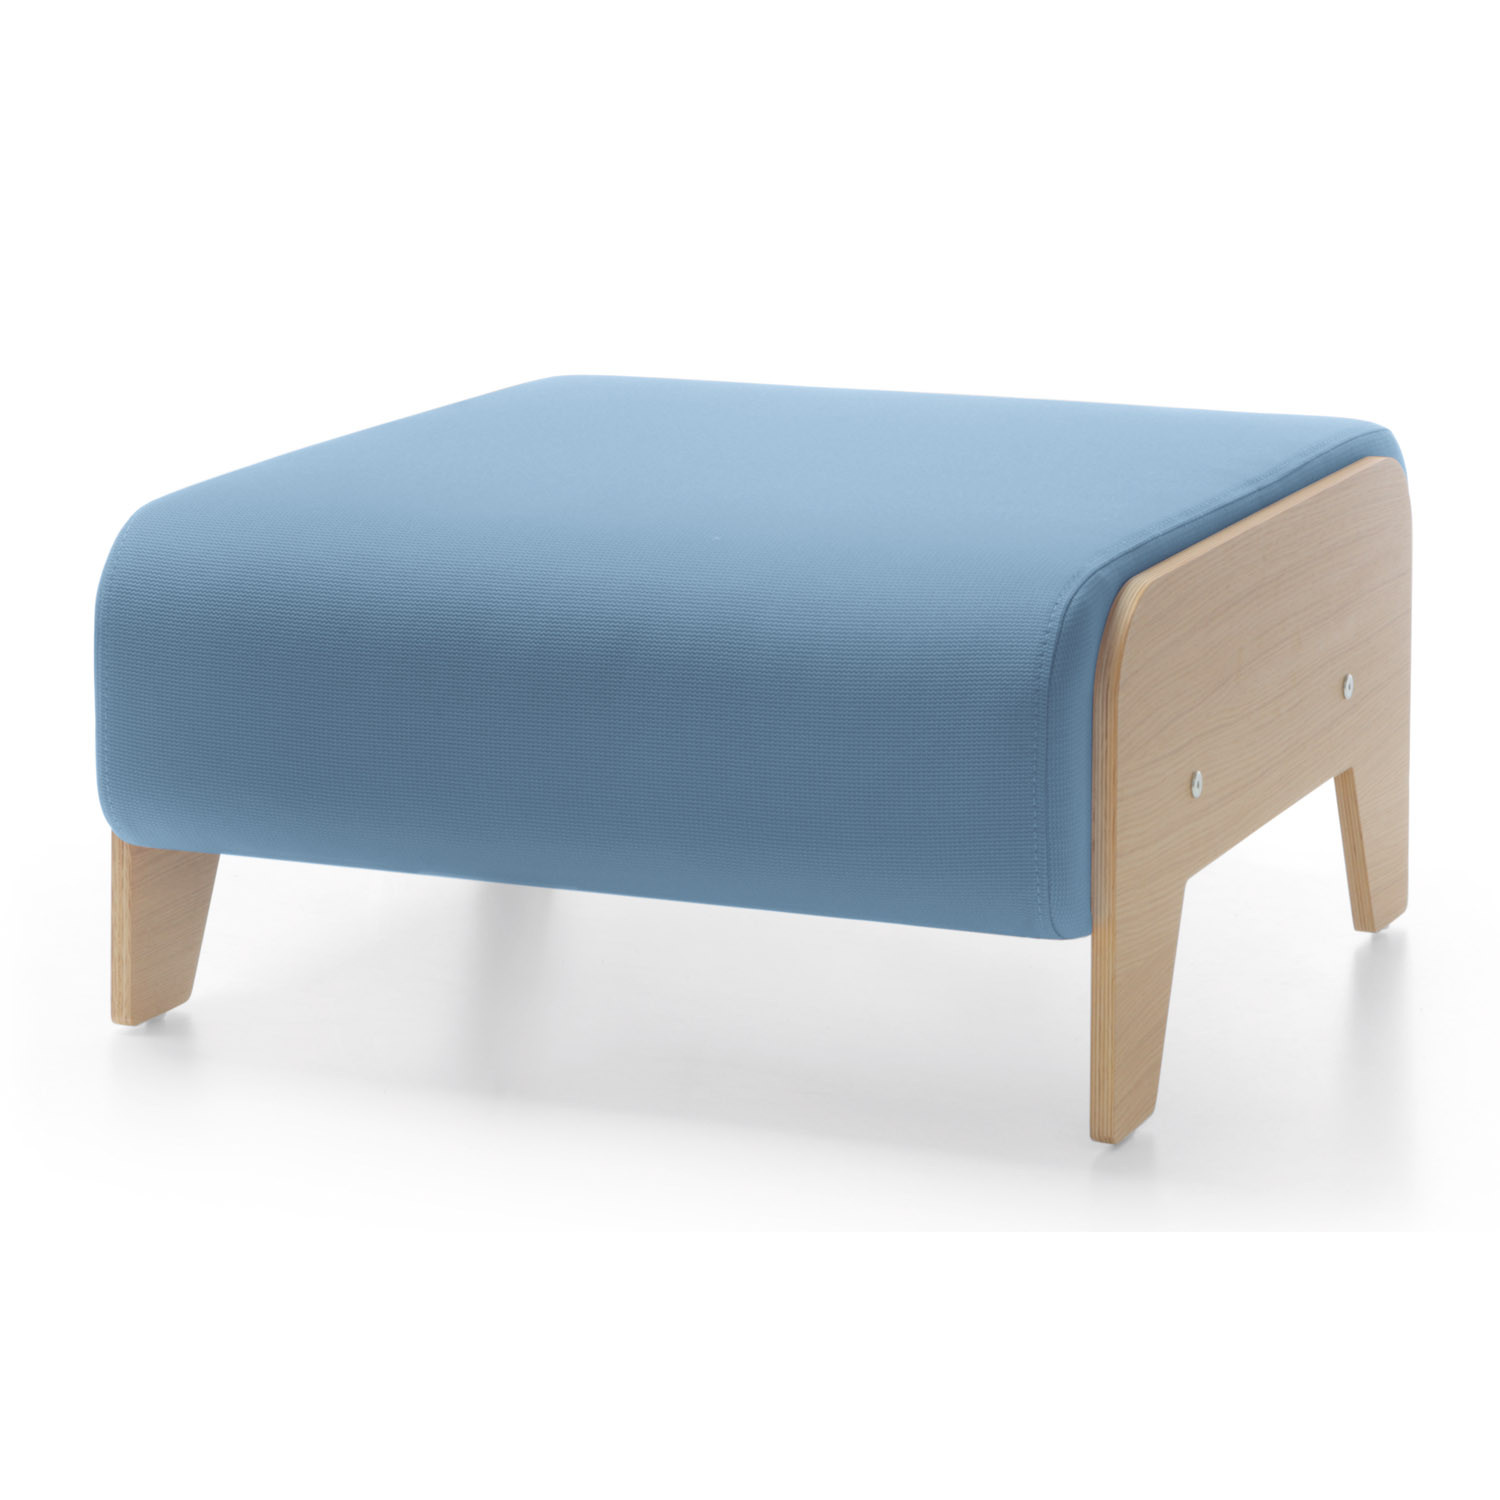 Chillout Stool by Mikomax